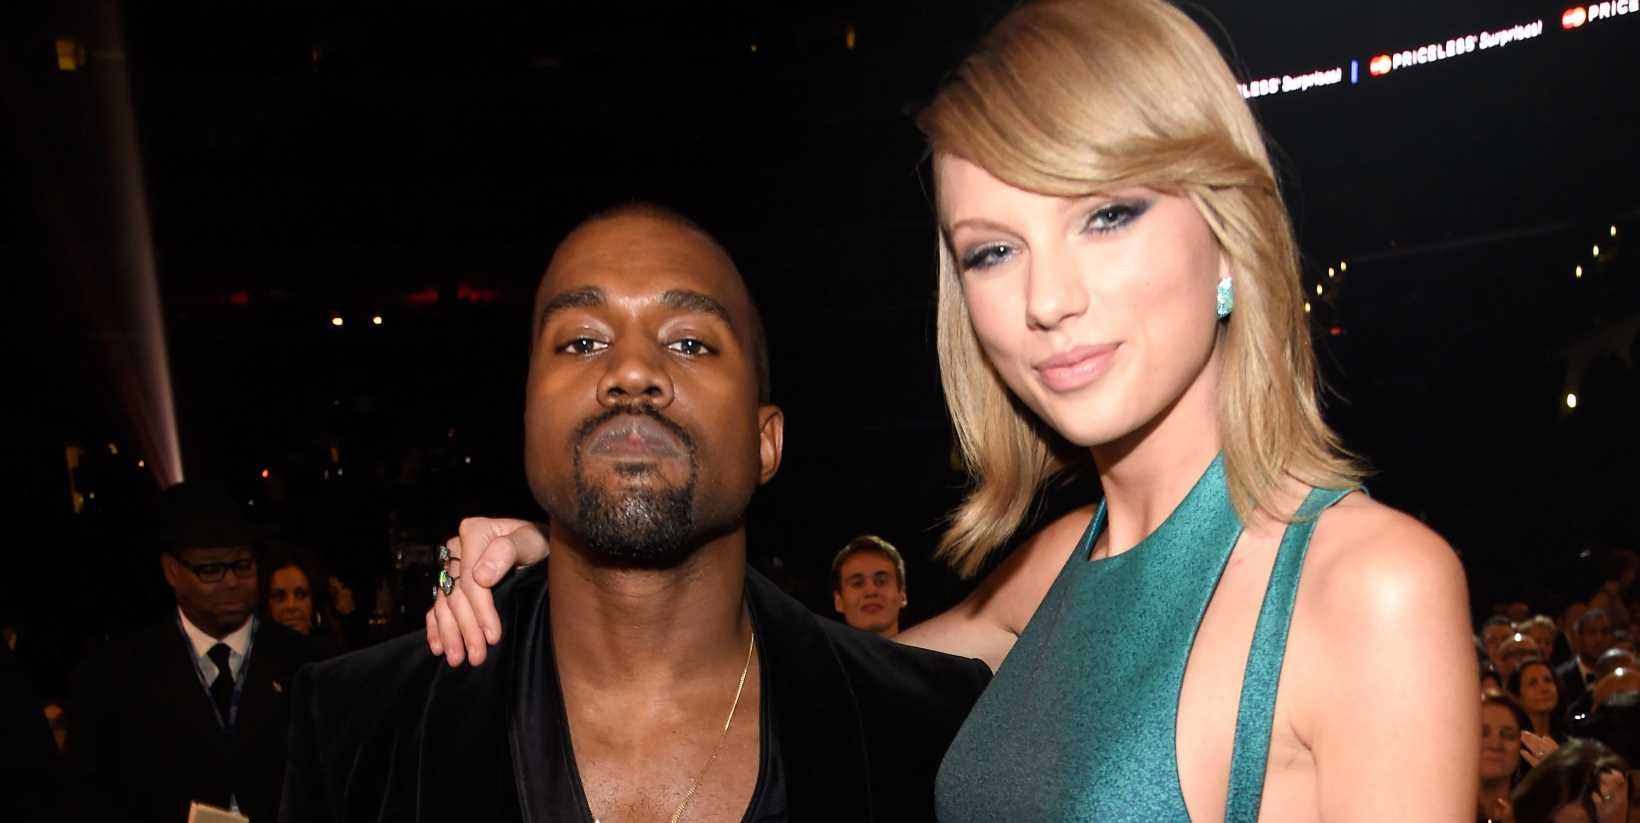 Taylor Swift Just Eviscerated Kanye West and Called Him Two-Faced in a 'Rolling Stone' Interview